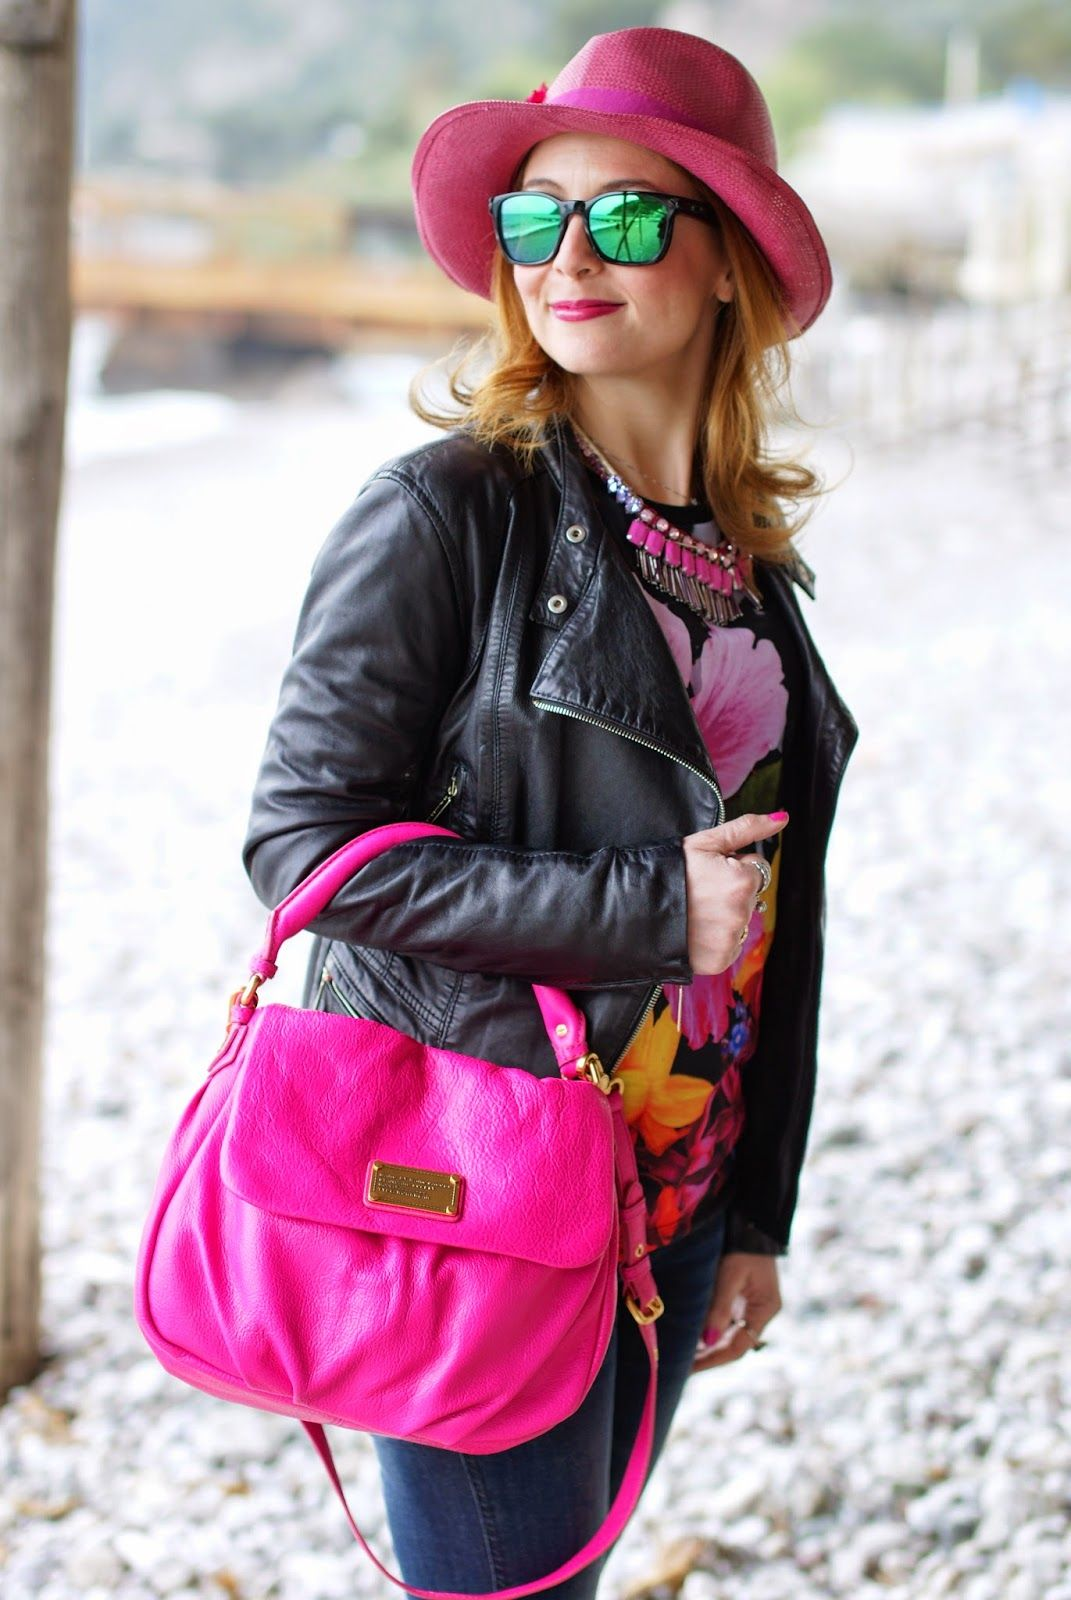 Rosé a pois hat, Sodini necklace, Marc by Marc Jacobs lil ukita bag, Shopart t-shirt, Fashion and Cookies, fashion blogger